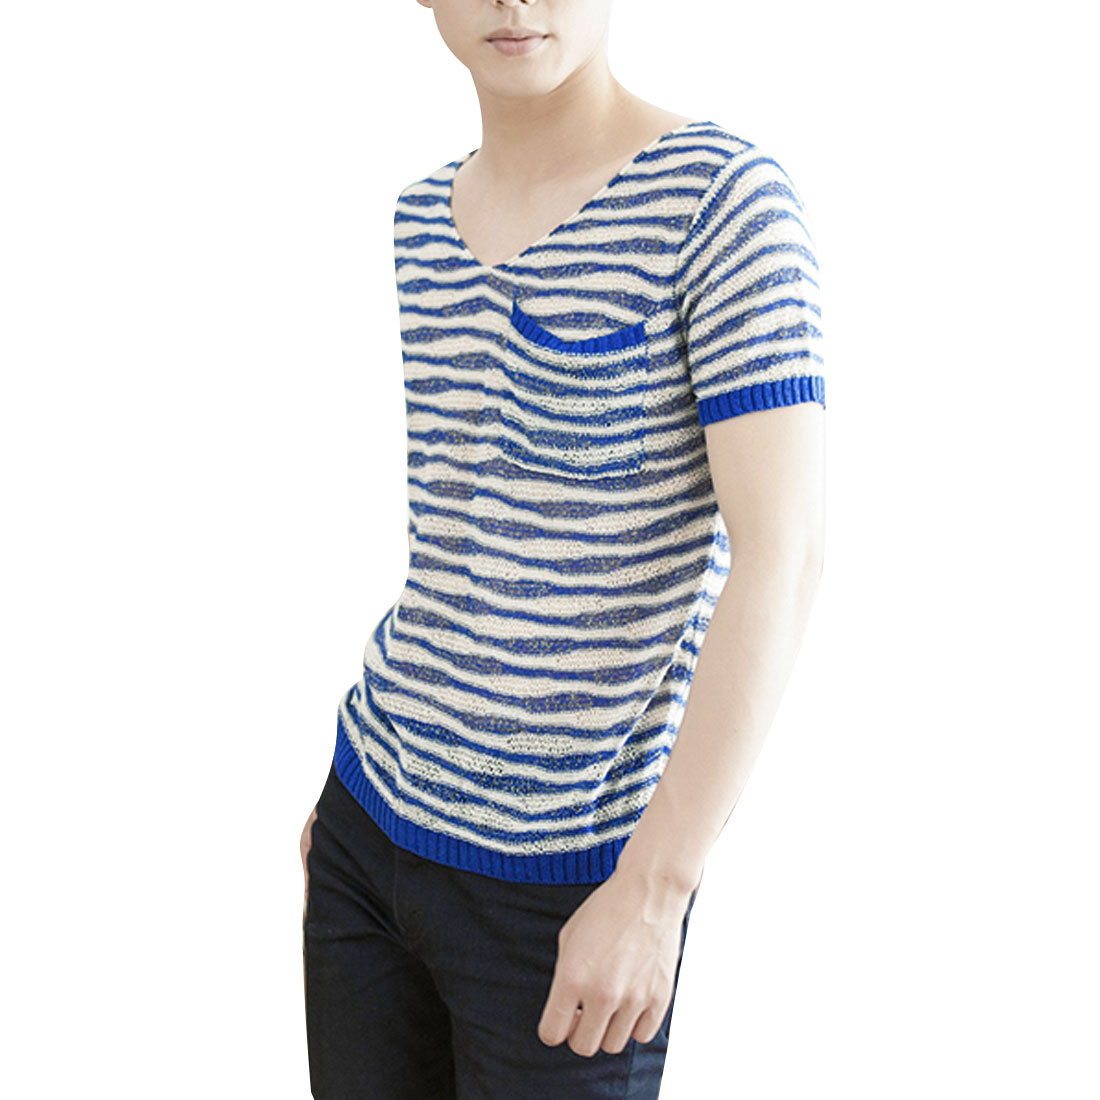 Man Fashion Round Neck Short Sleeve Hollow Design Blue Beige Knitted Top S